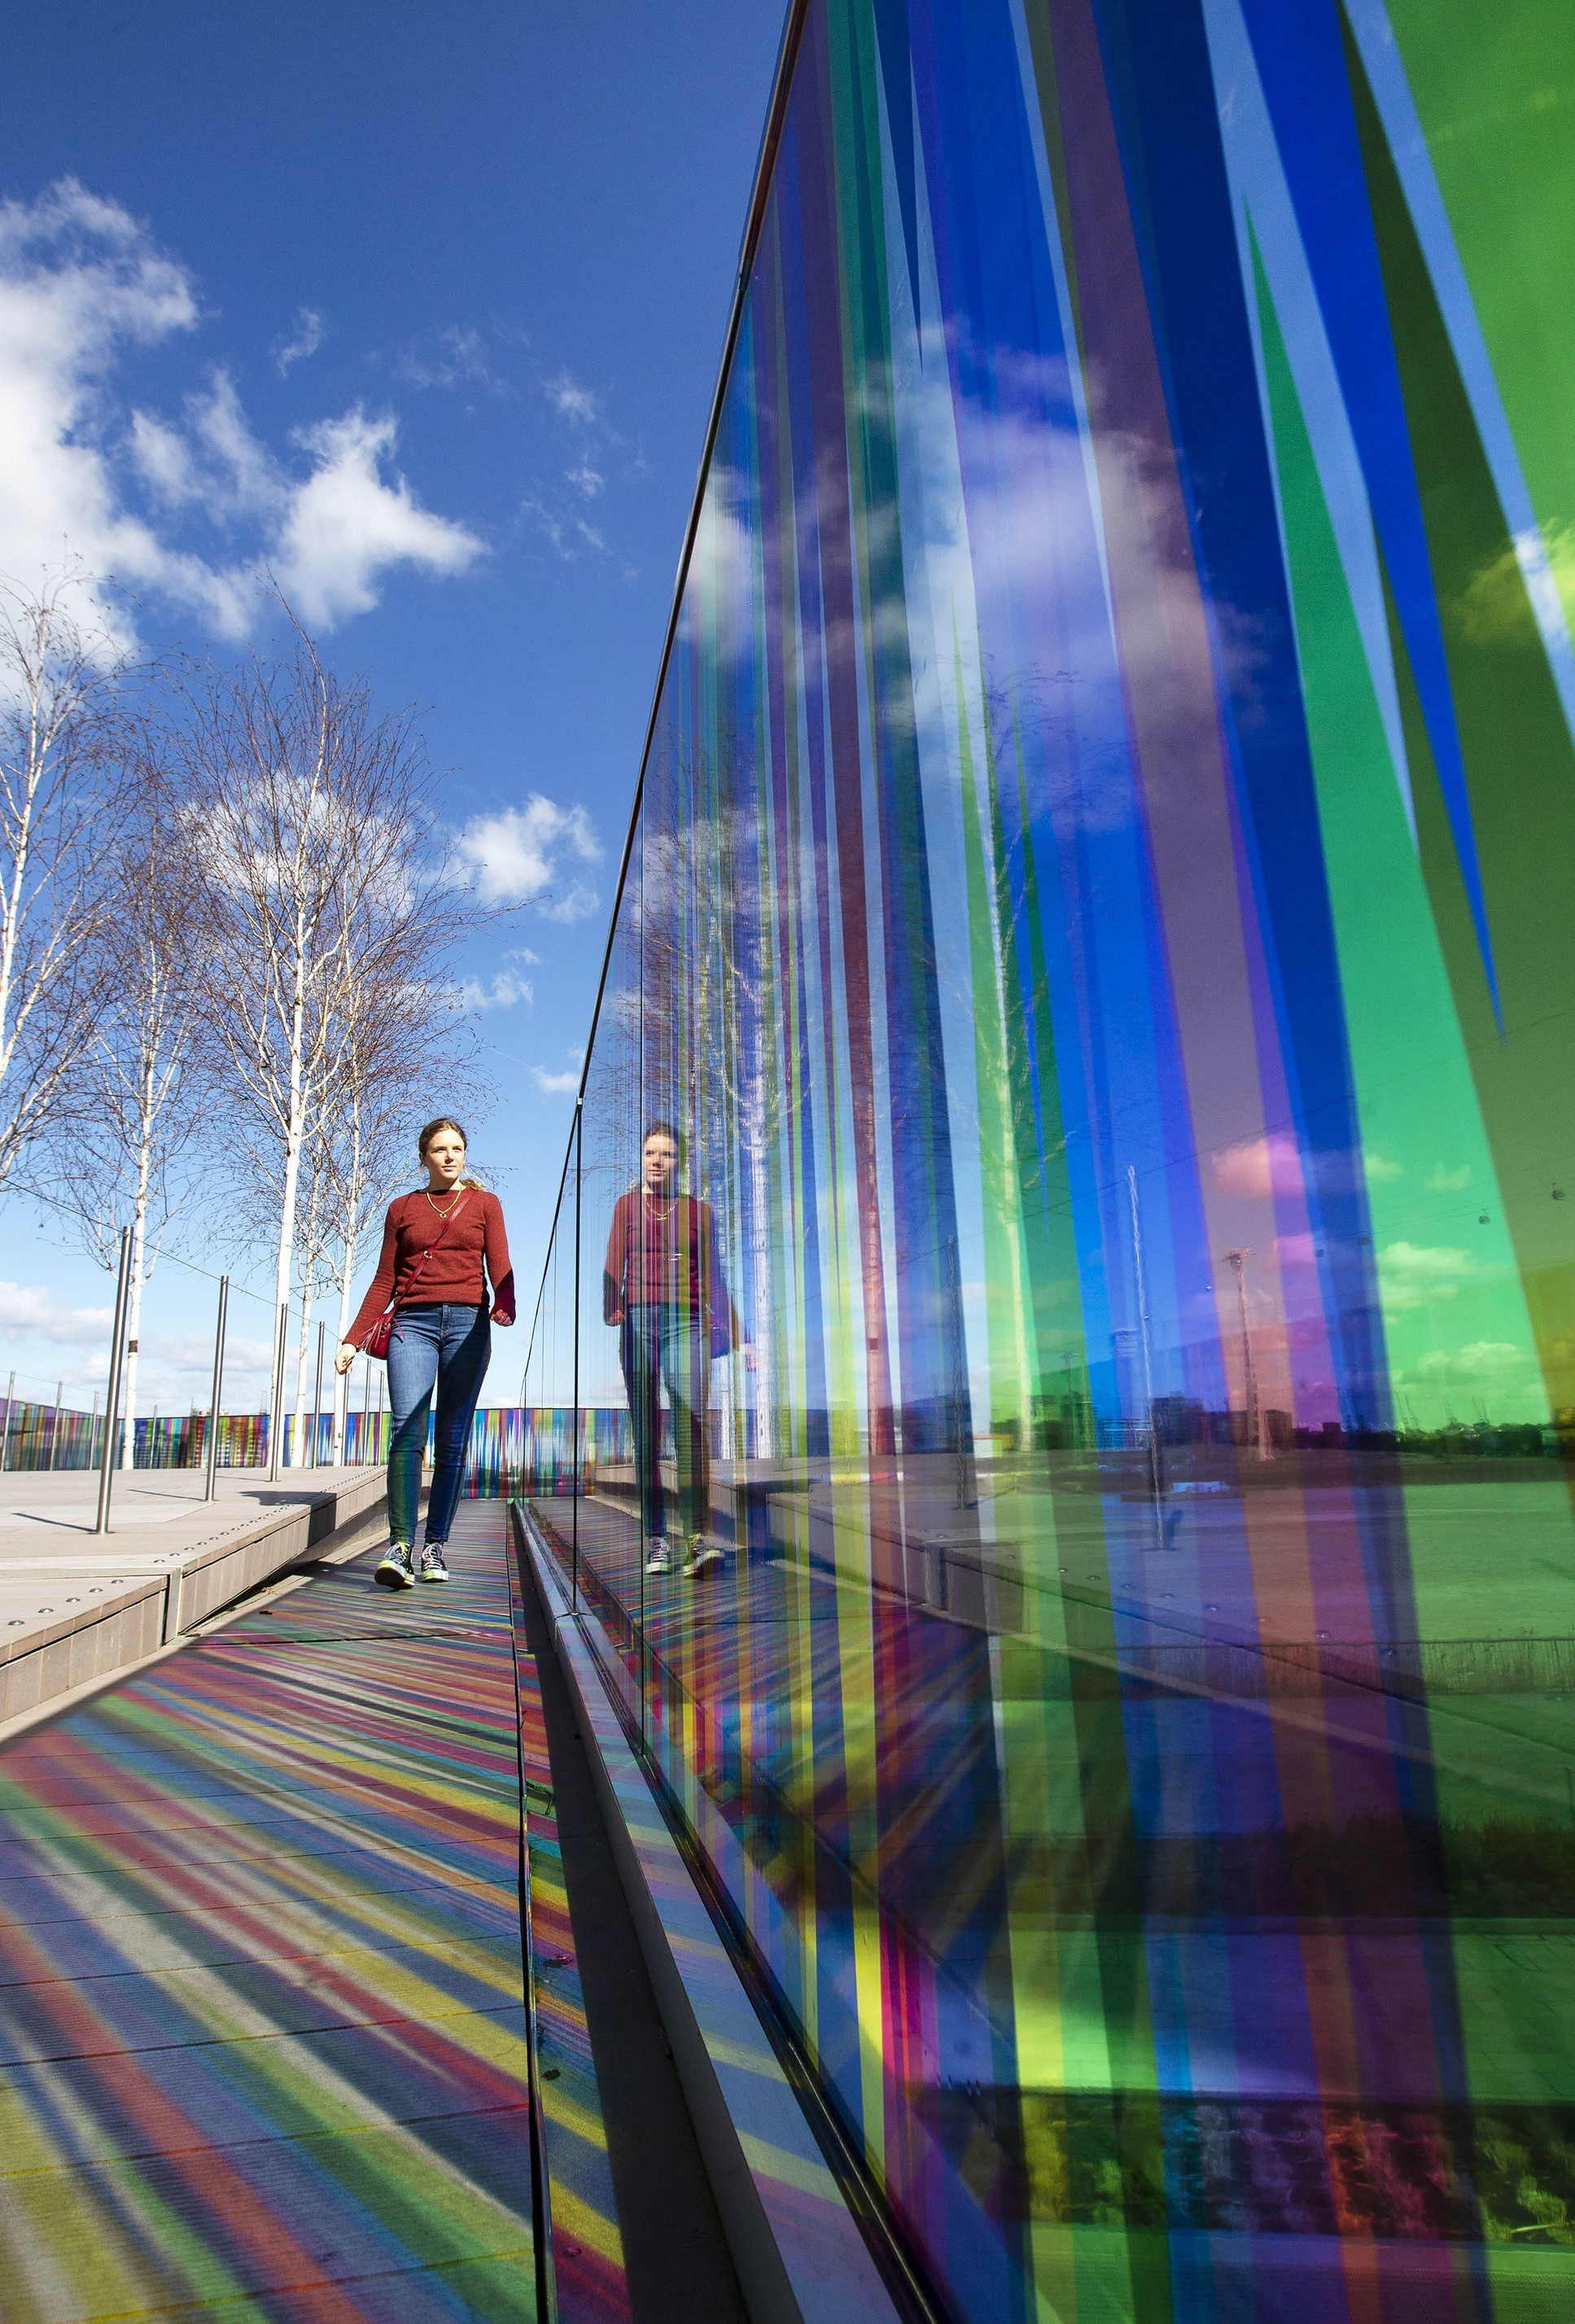 Hundreds and Thousands, a new large-scale installation by artist Liz West commissioned by Greenwich Peninsula, is unveiled on The Tide in North Greenwich, London Picture: MATT ALEXANDER/PA